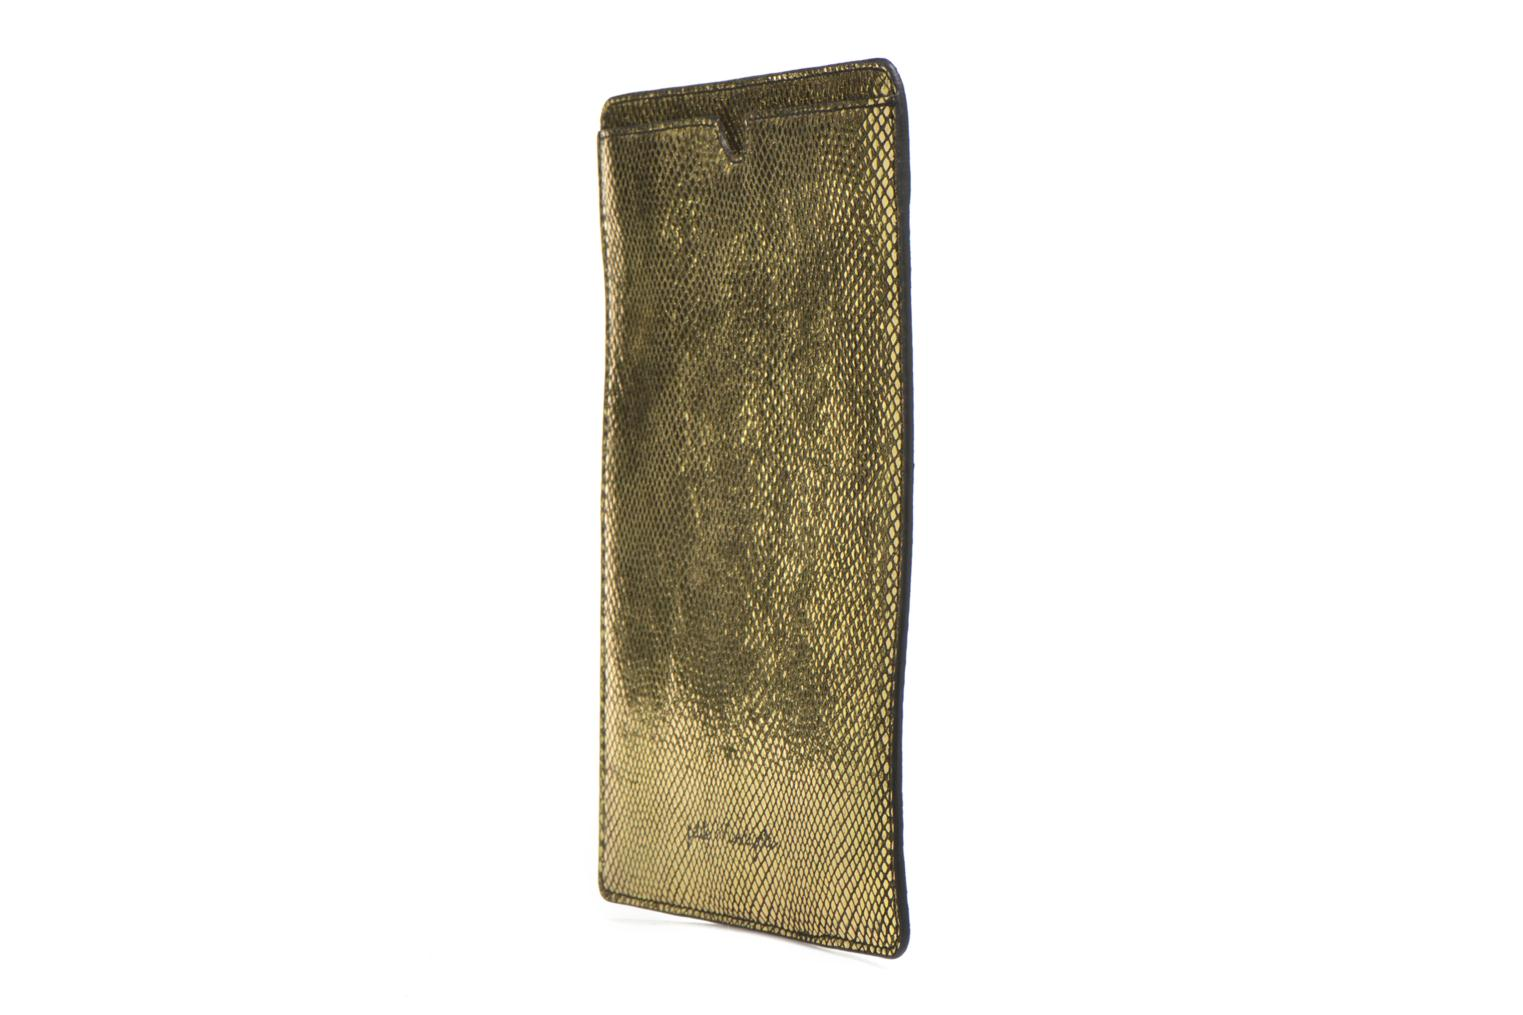 Big Etoile Porte iPad Gold exotic cow split oil